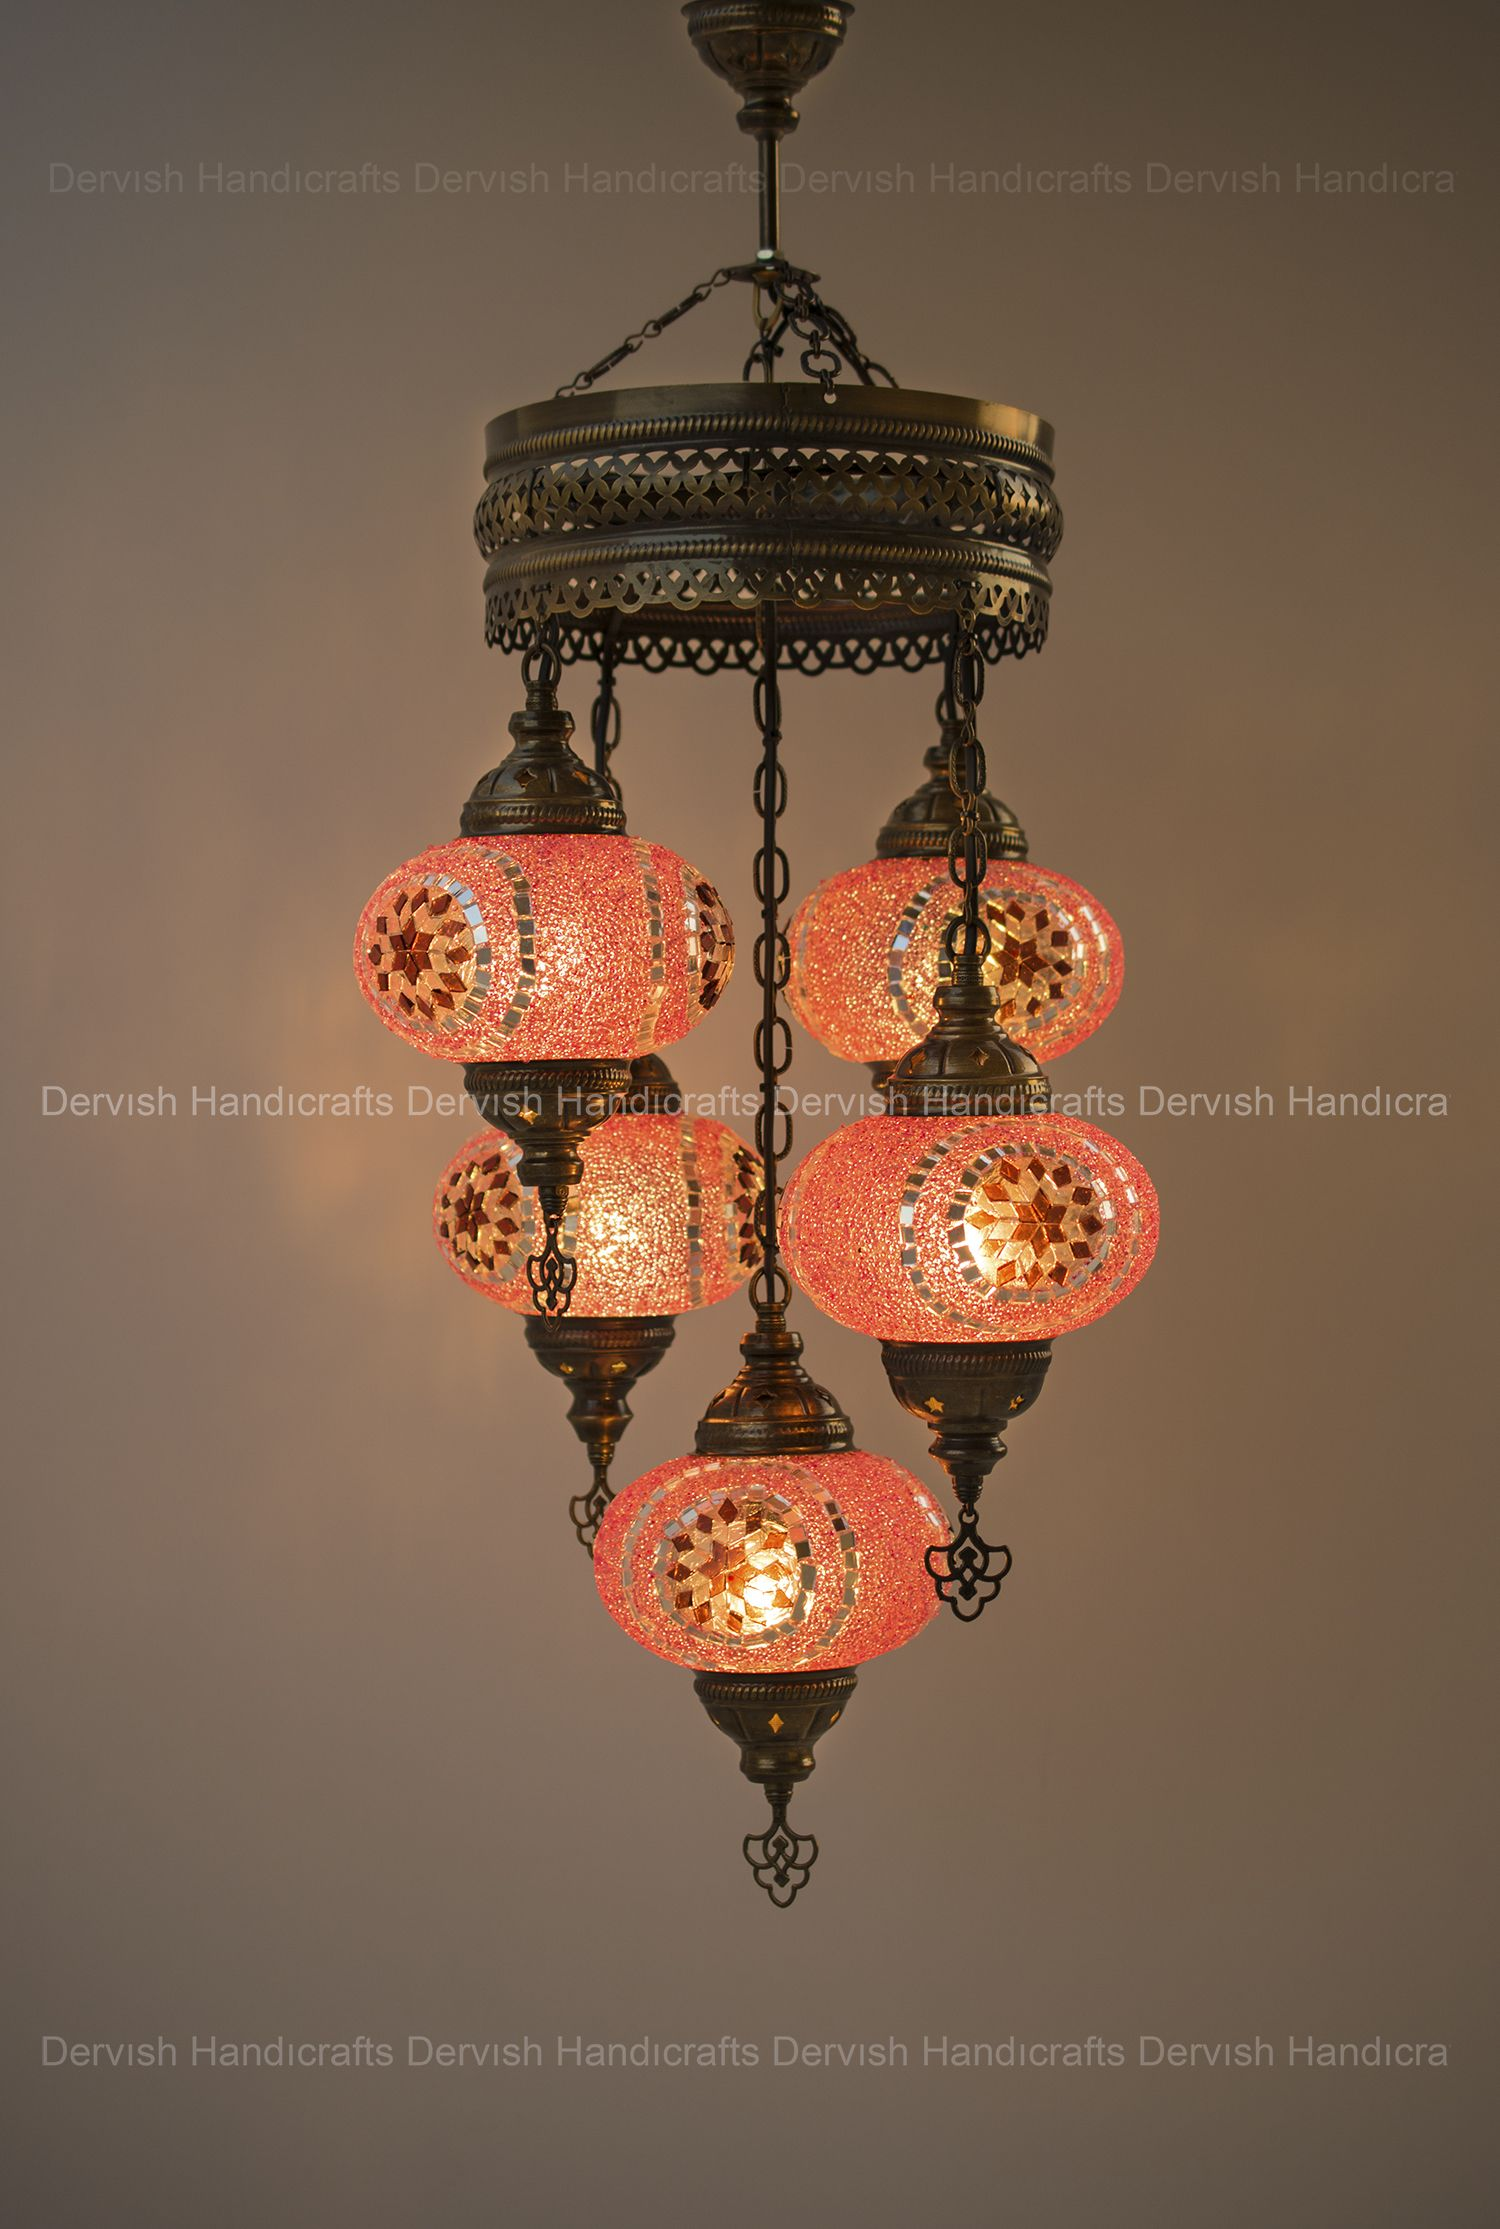 Pin By Crystal Dingus On Architecture Turkish Lamps Hanging Lanterns Ceiling Lamp